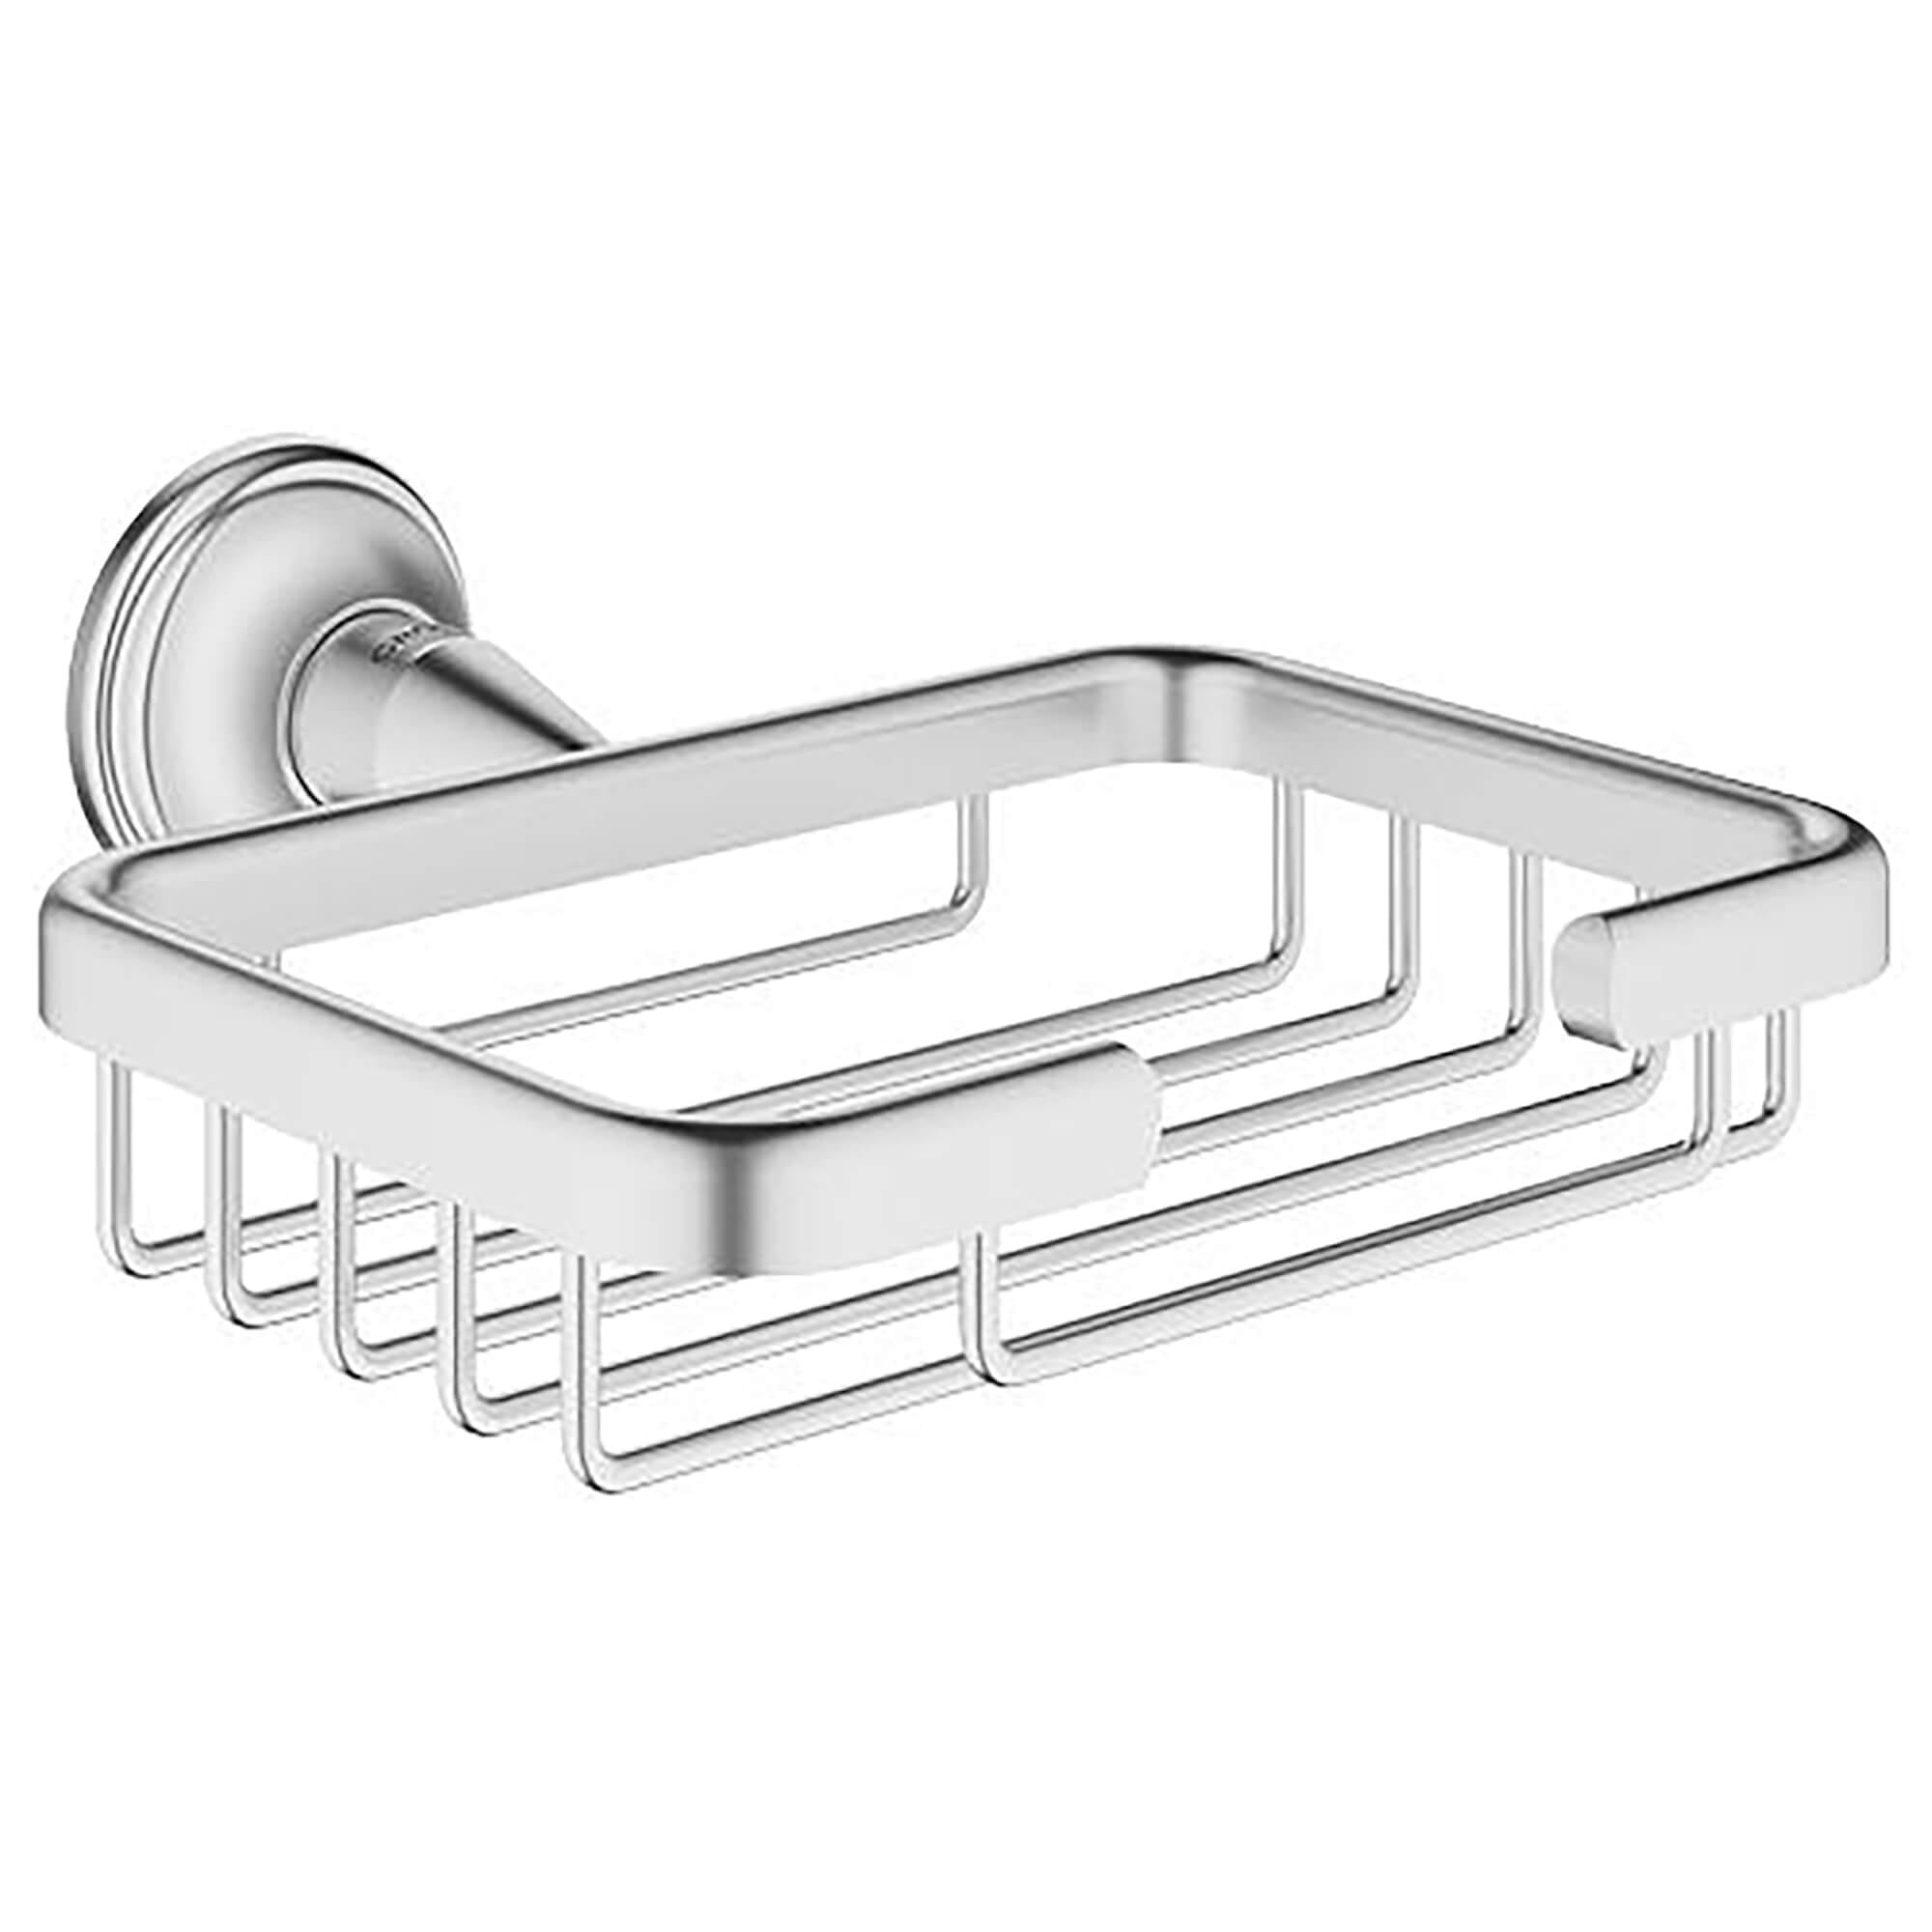 Filing Basket GROHE BRUSHED NICKEL